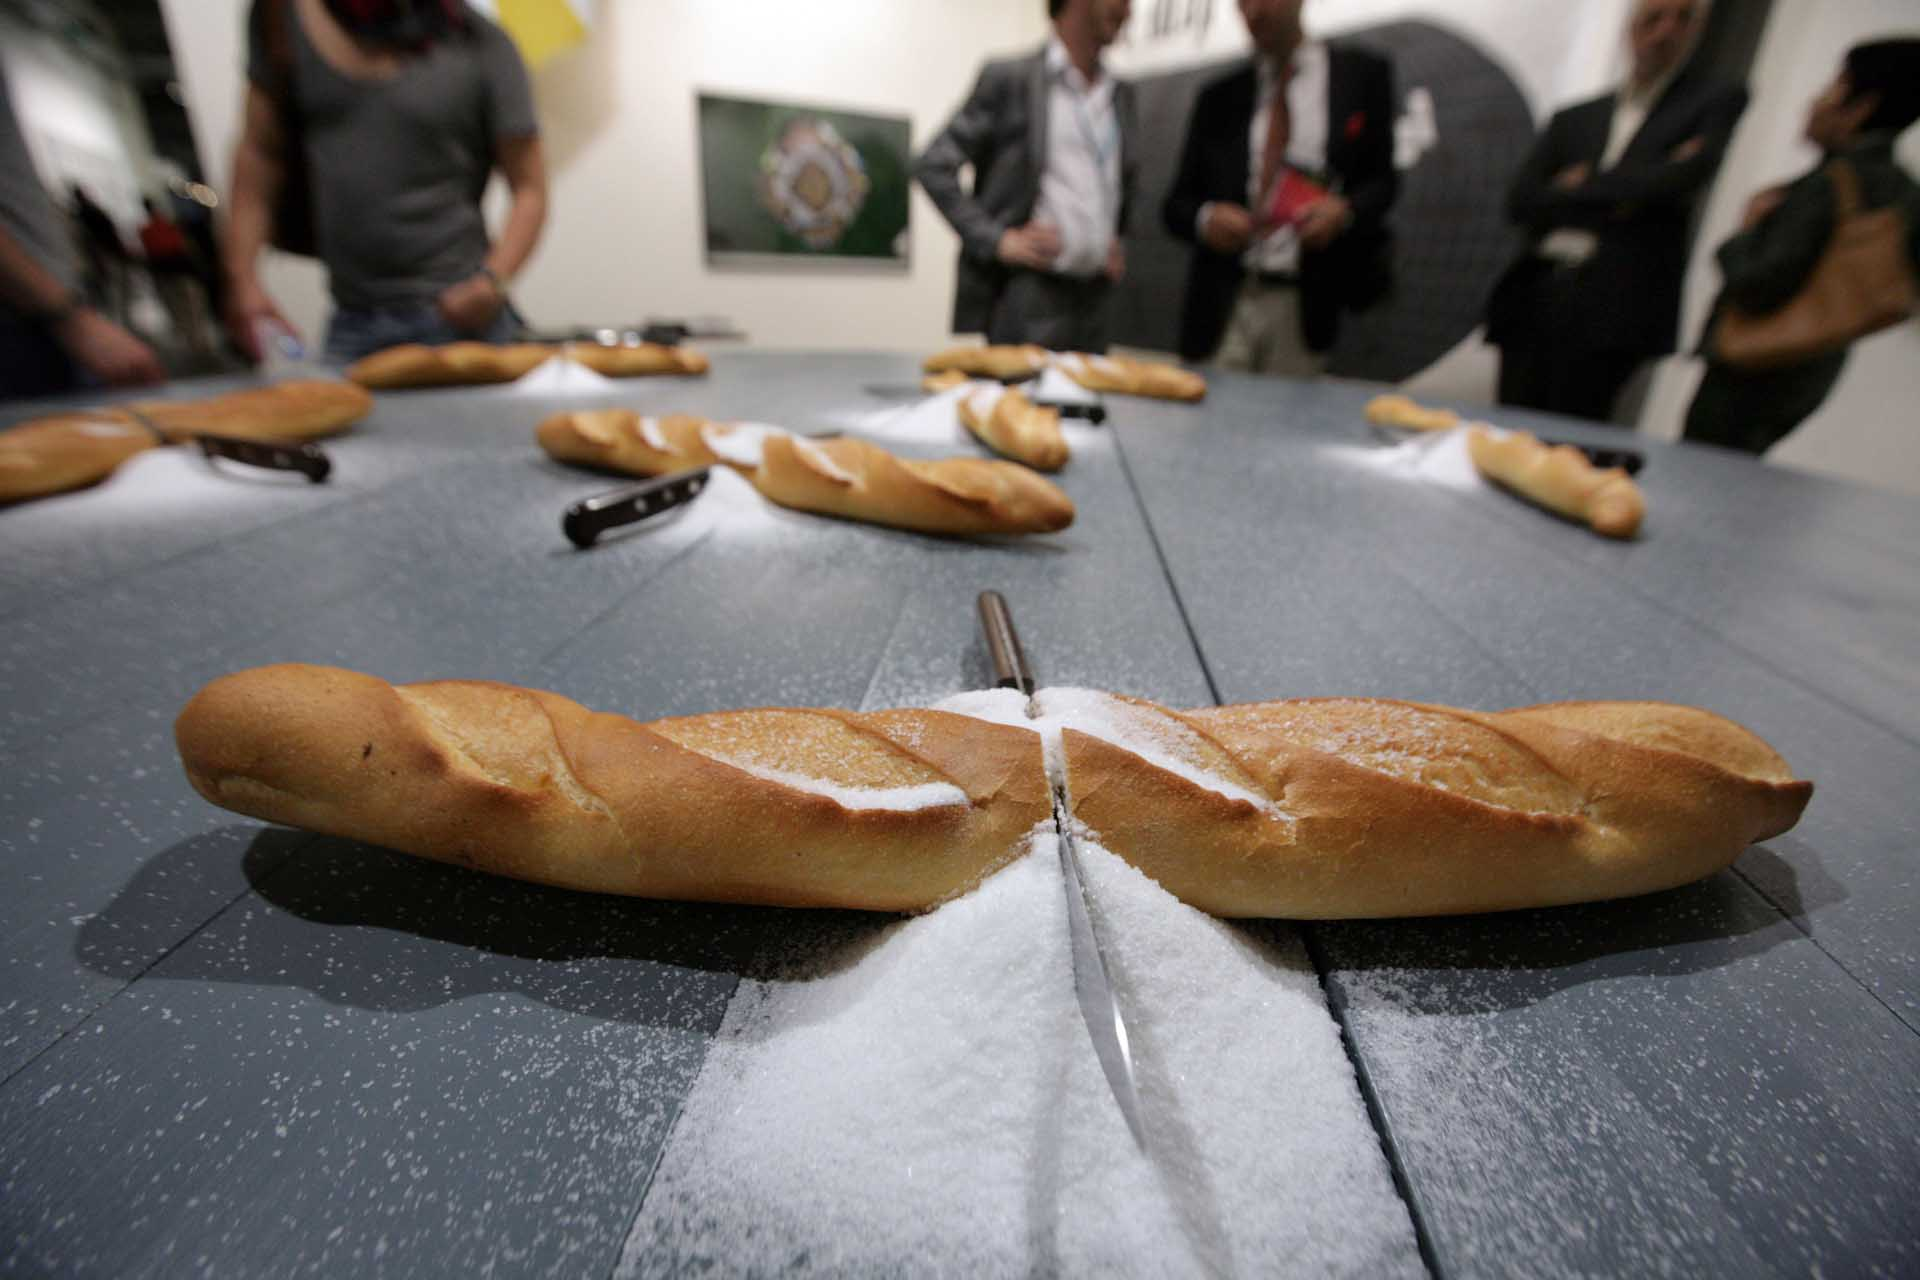 "Art 42, 2011: ""Stranieri"" (Foreigner), a round table with bread, salt and knives is the provocative installation by the artist Mircea Cantor in the booth of the gallery Magazzino from Rome"